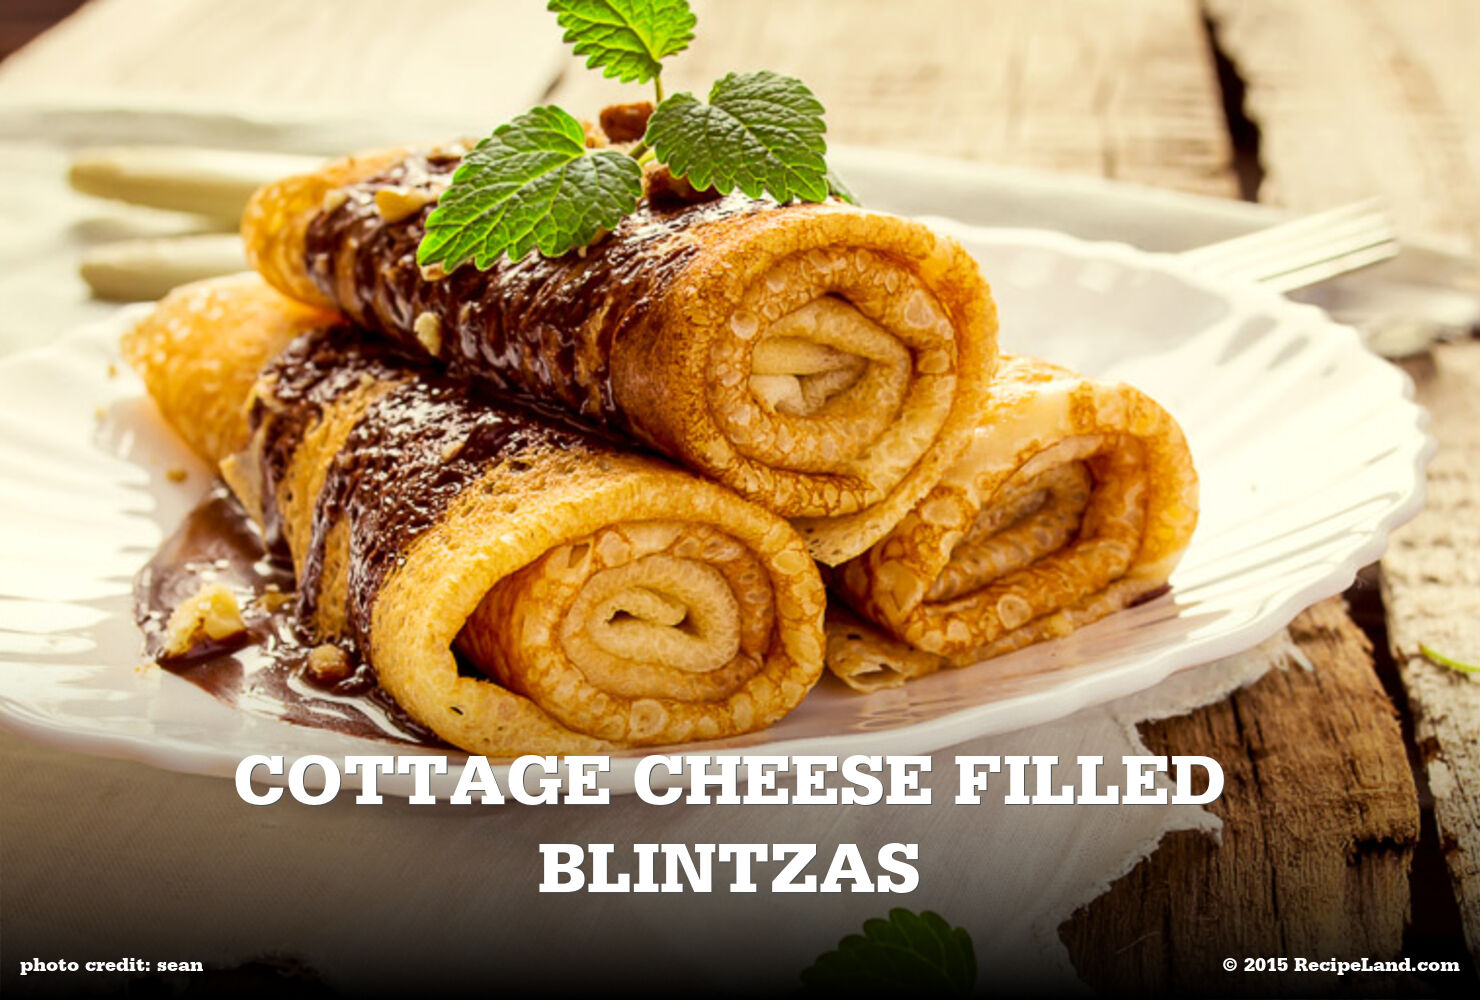 Cottage Cheese Filled Blintzas